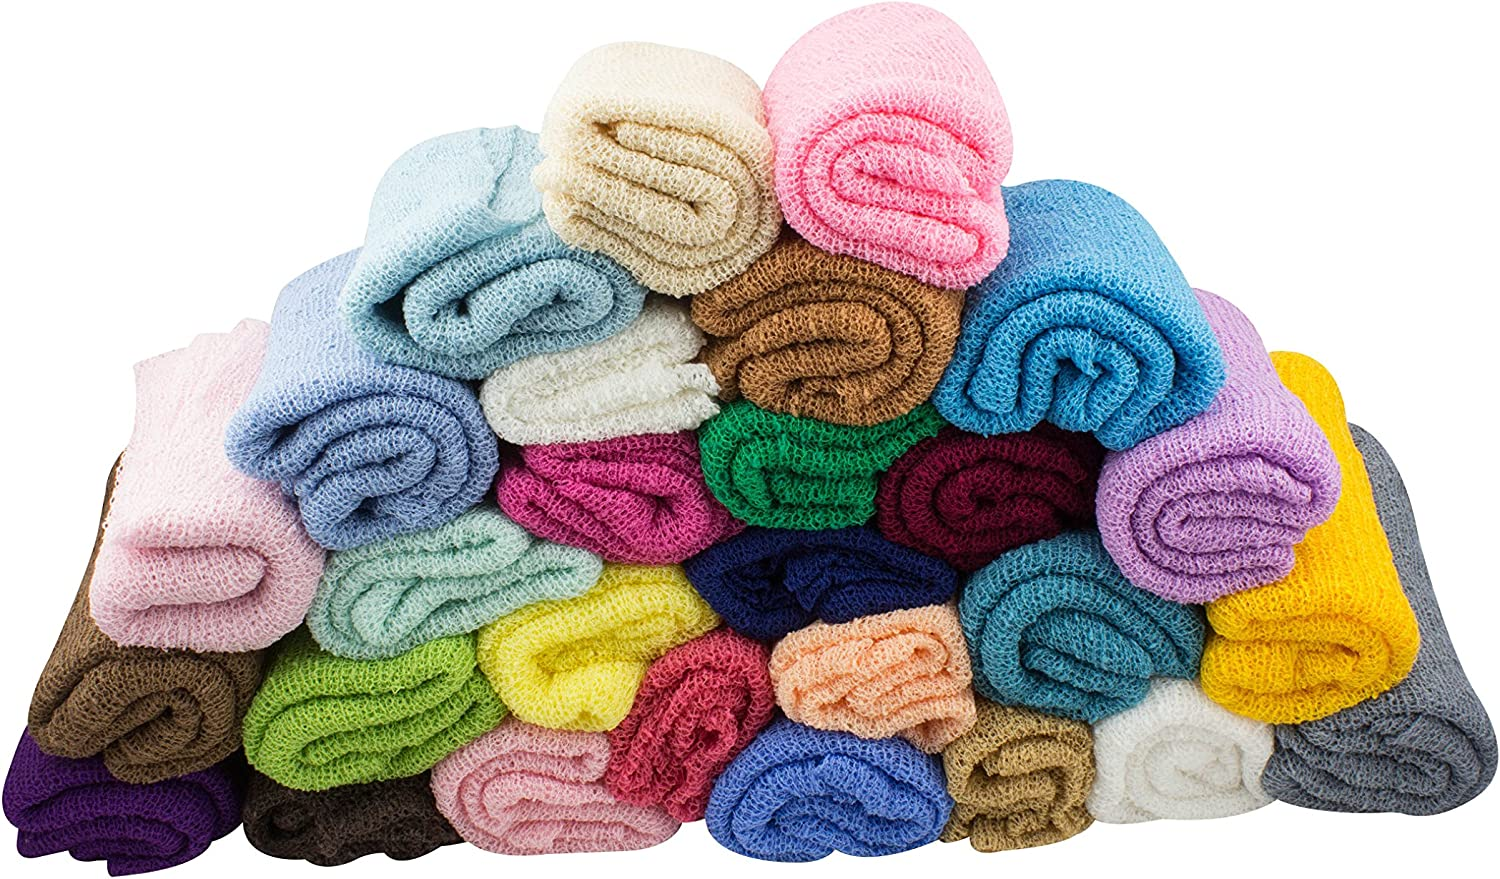 28 Colors to Choose from JLIKA Newborn Baby Photography Photo Prop Stretch Wrap